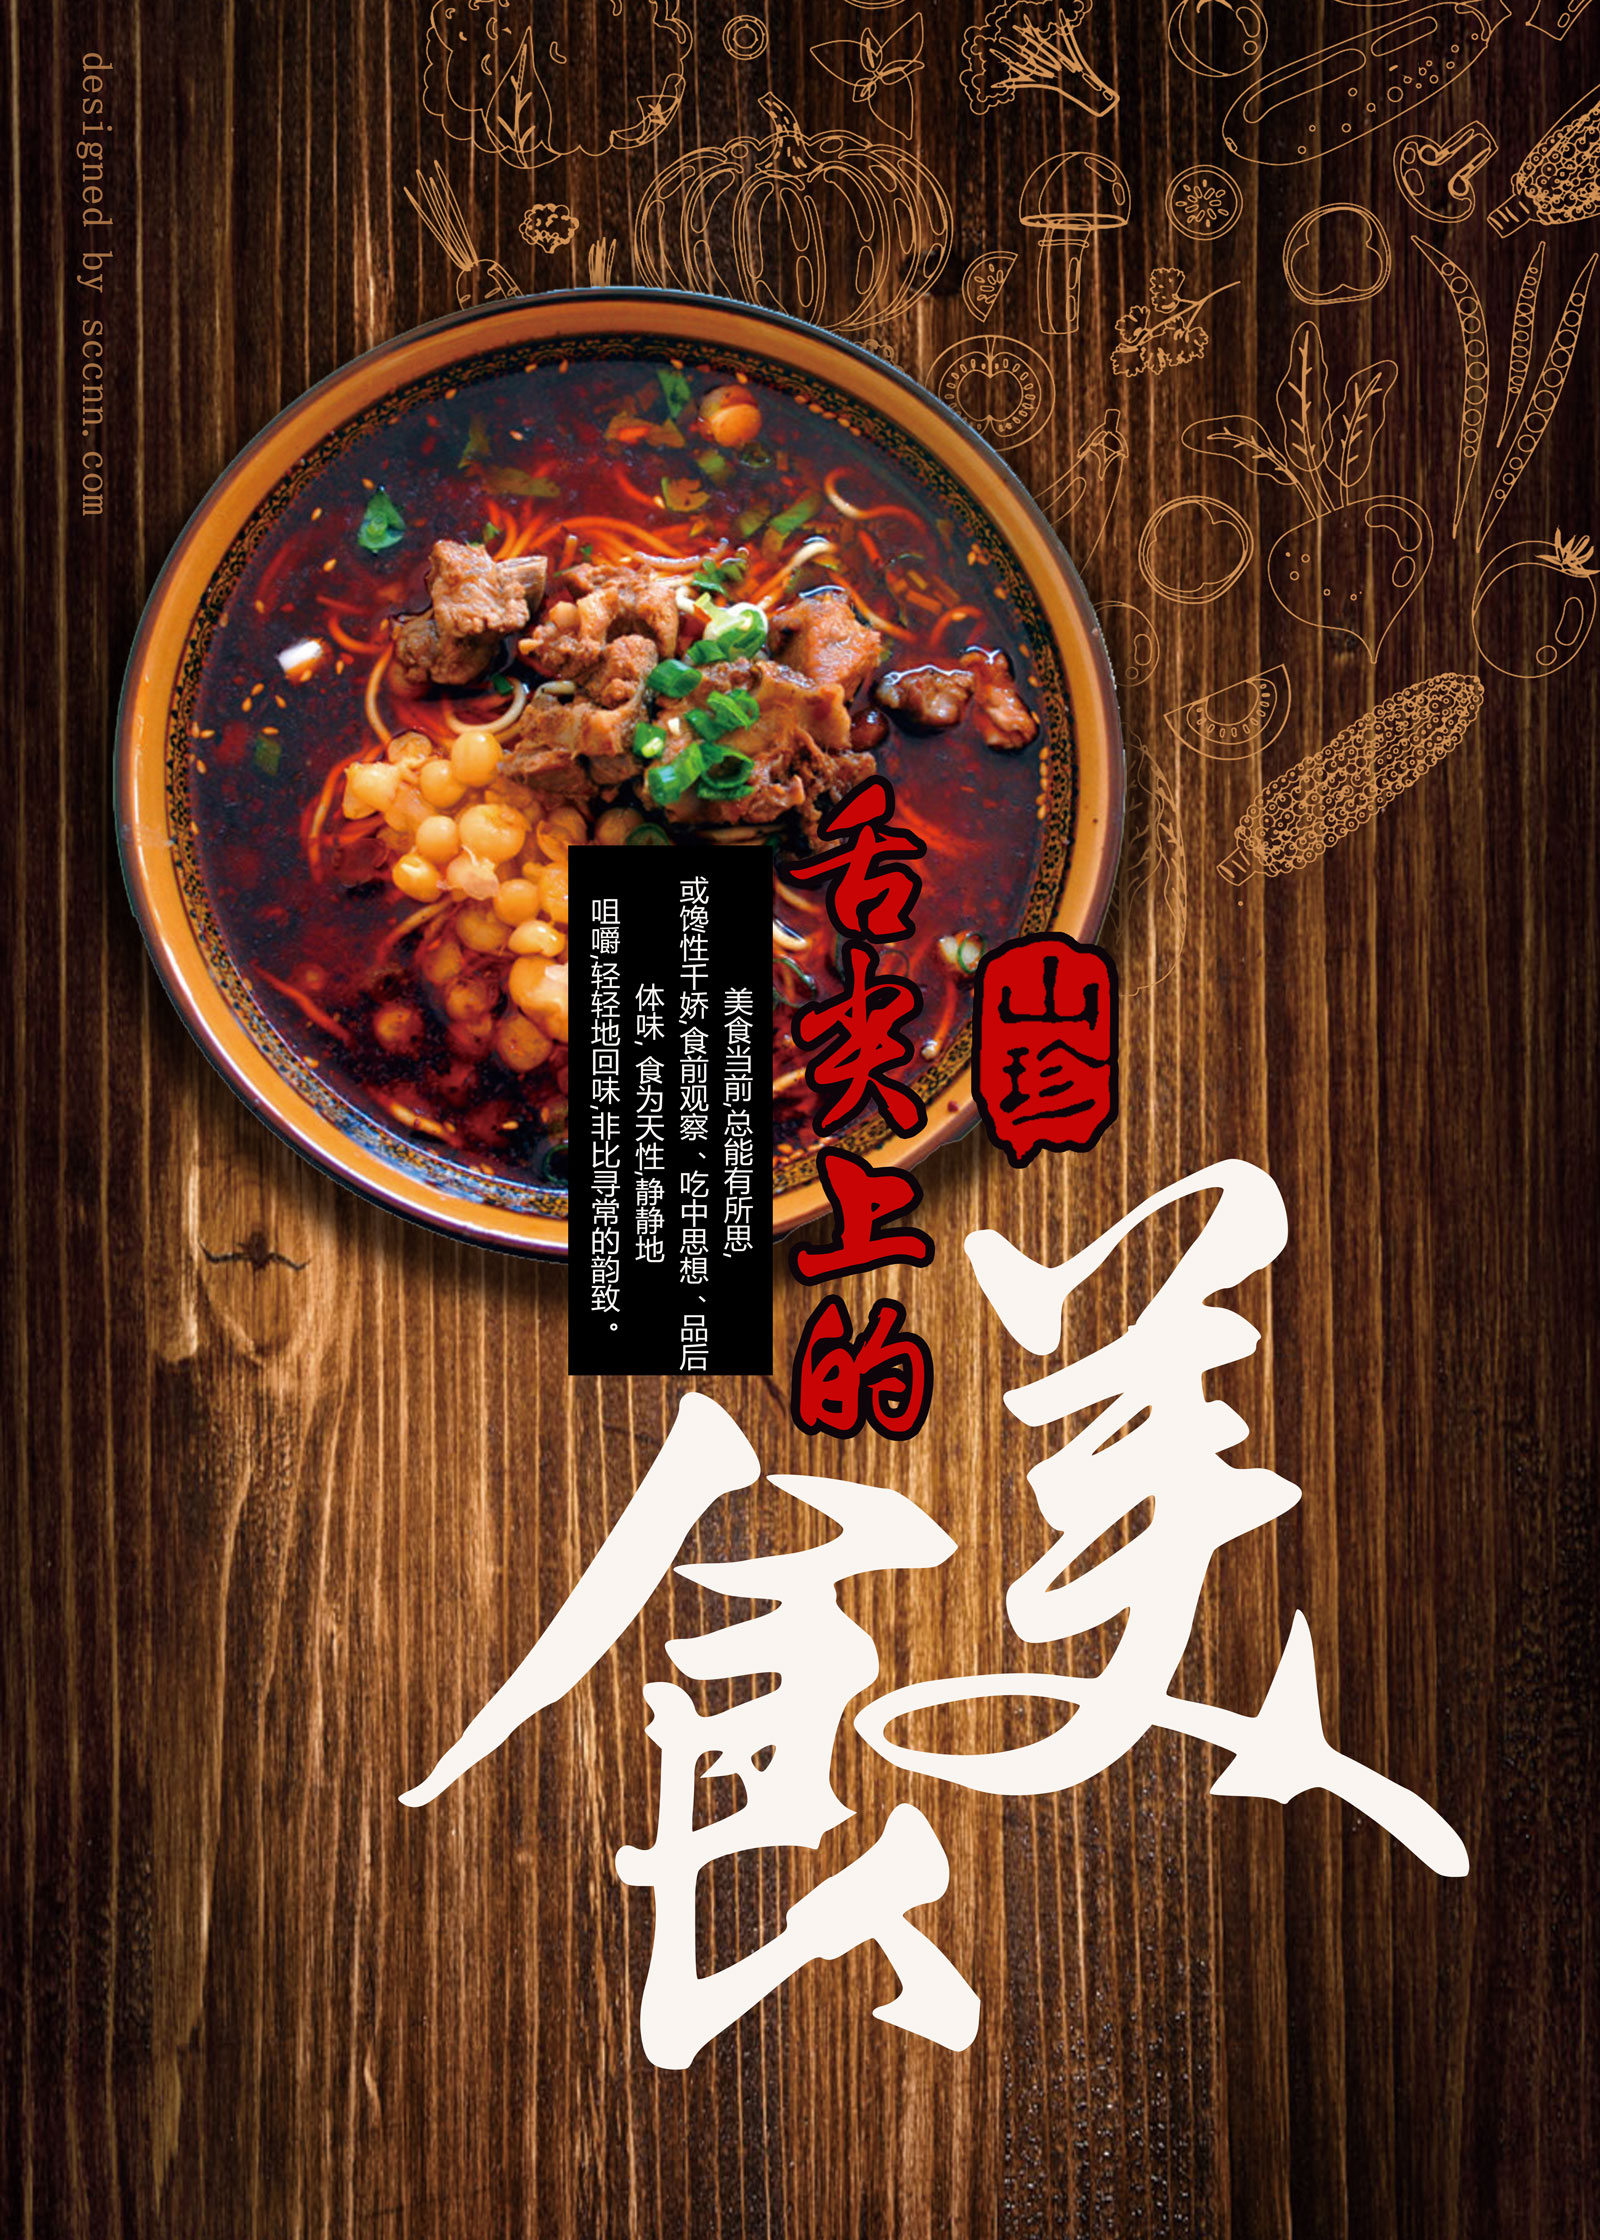 chinesefontdesign.com 2017 03 14 22 19 29 A Bite of China Restaurant posters PSD File Free Download